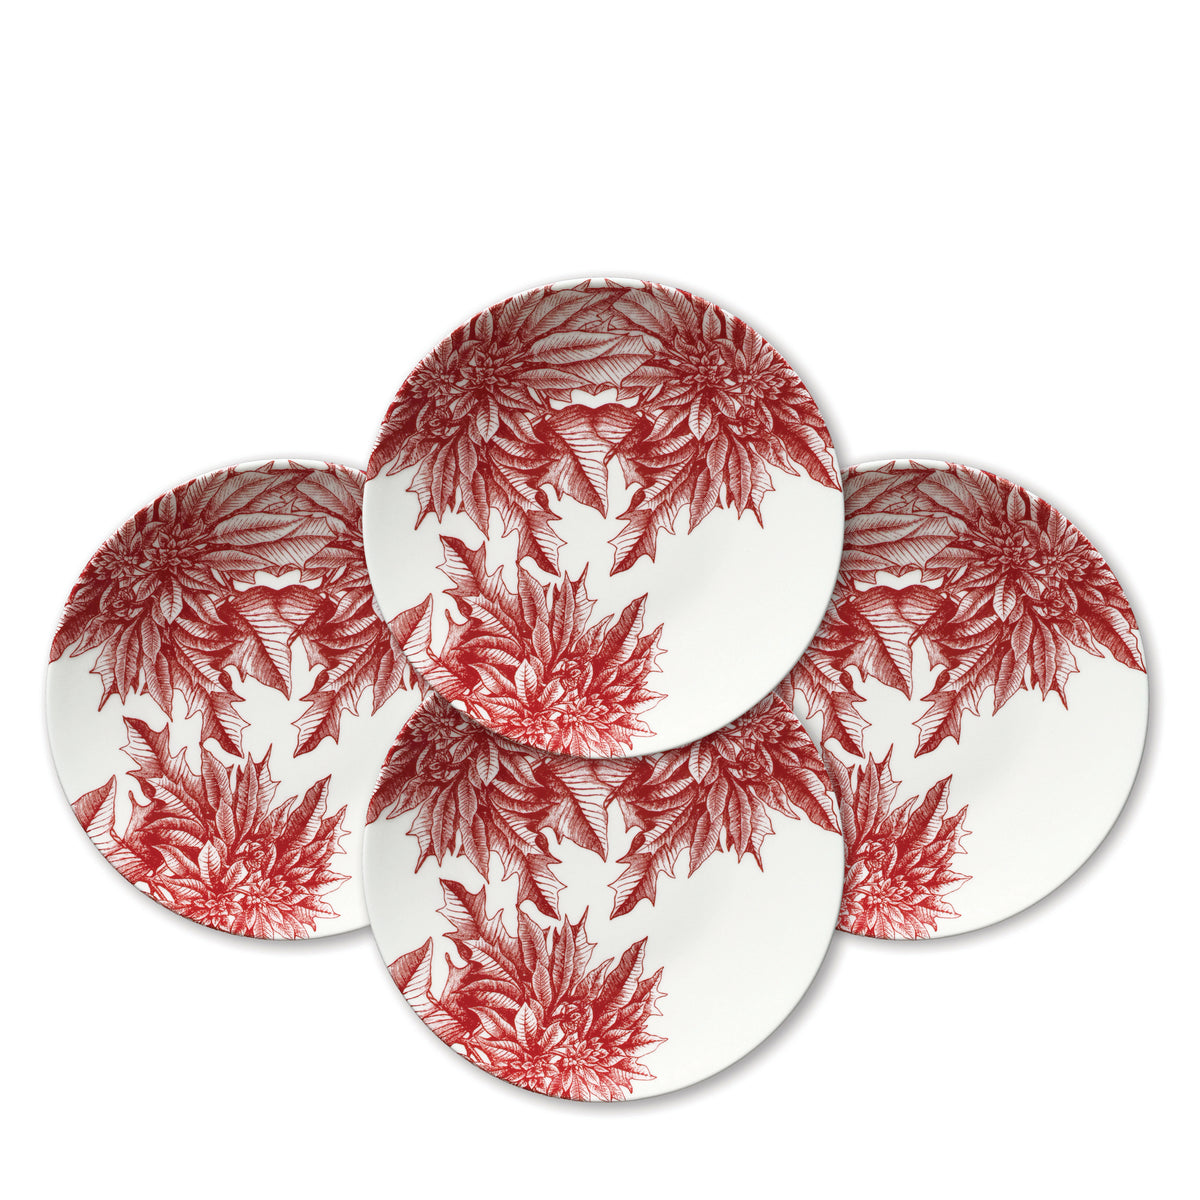 Poinsettia Splash Coupe Salad Plate - Caskata